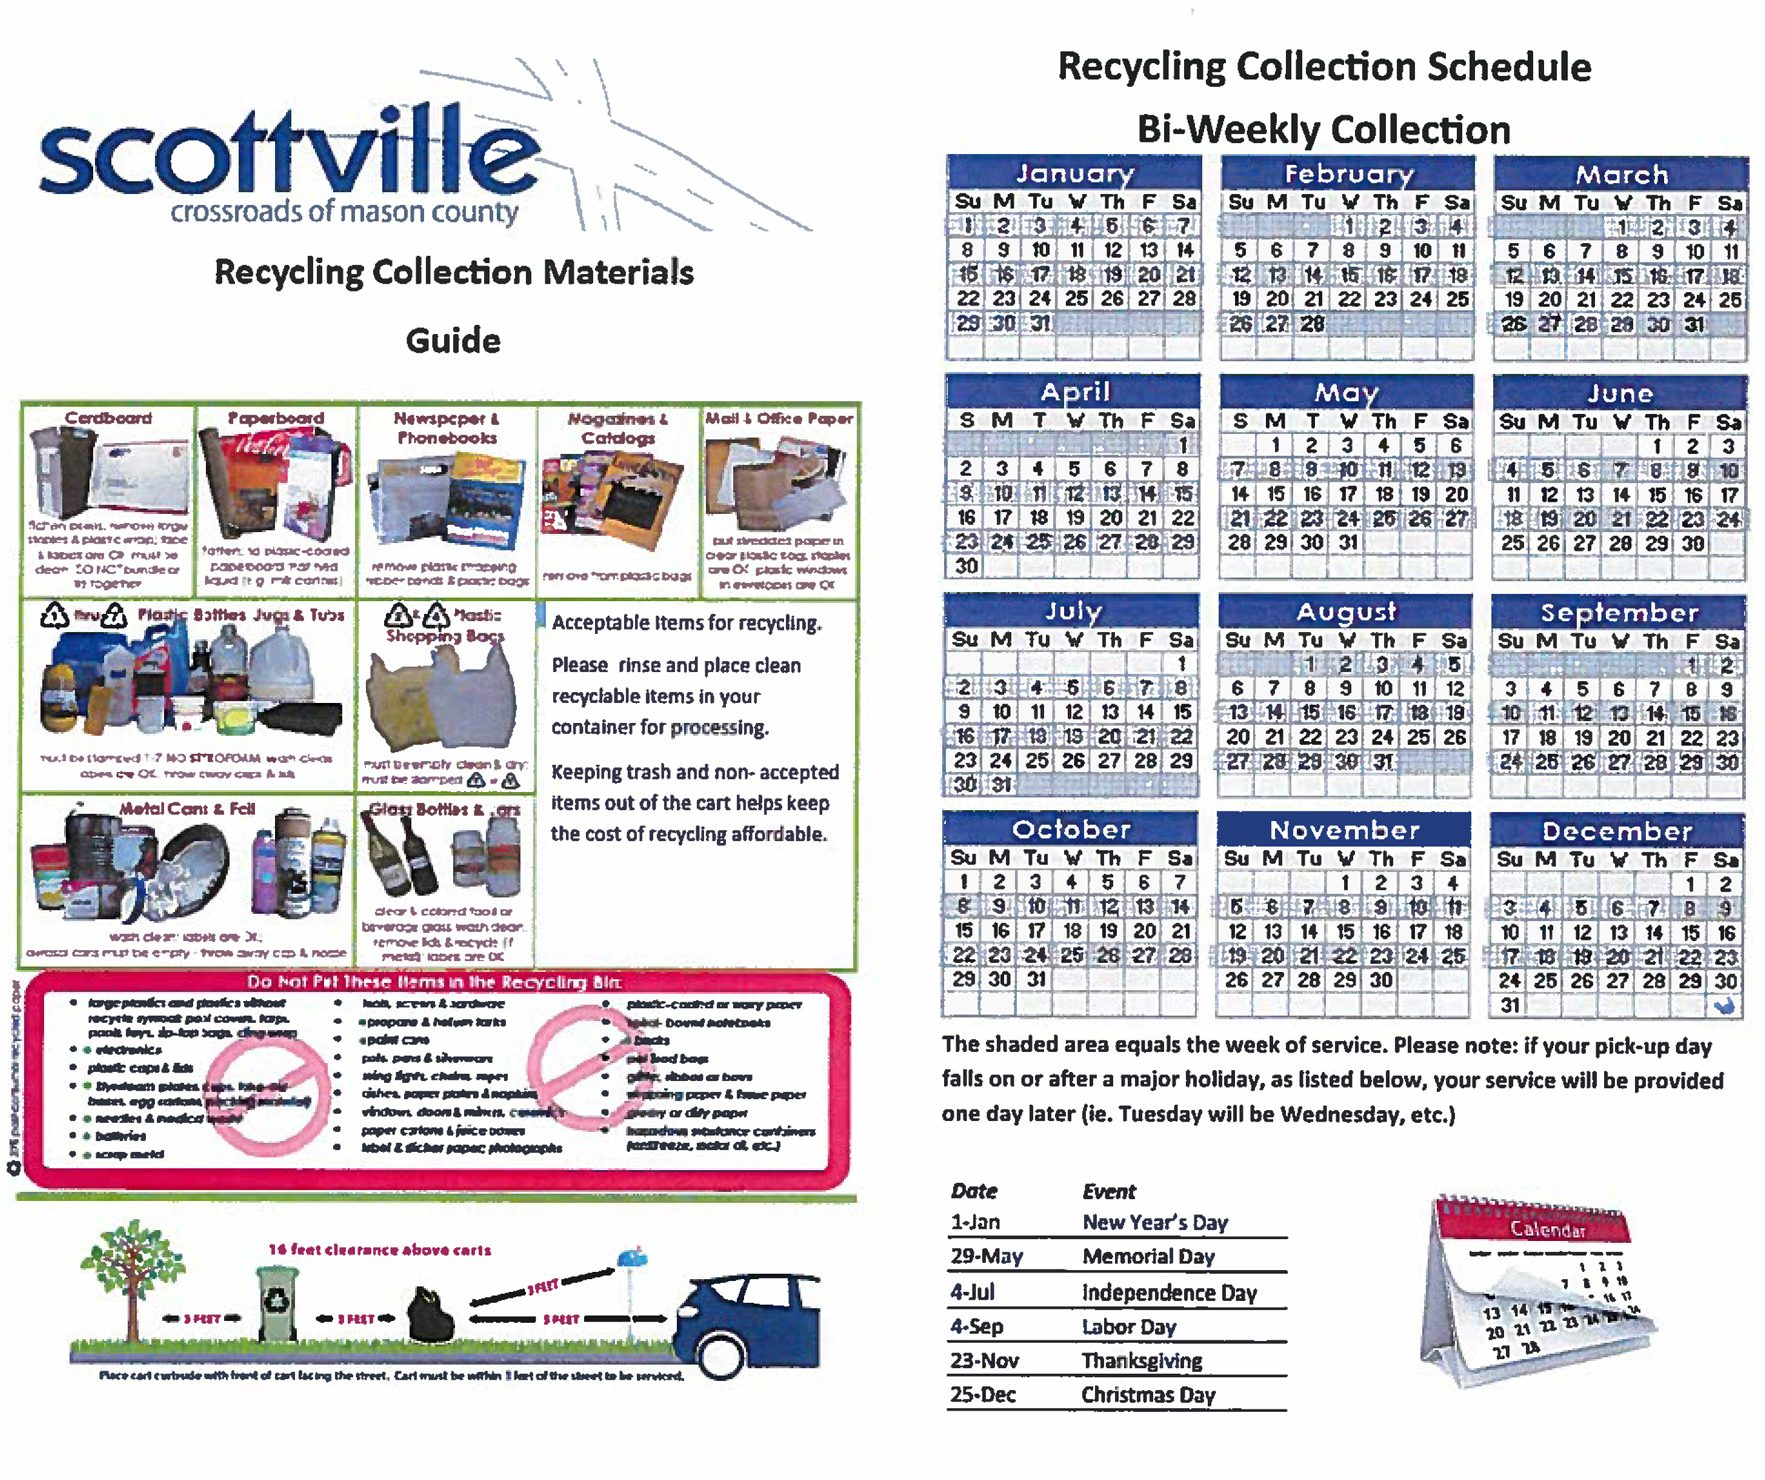 City of Scottville Recycling Guide